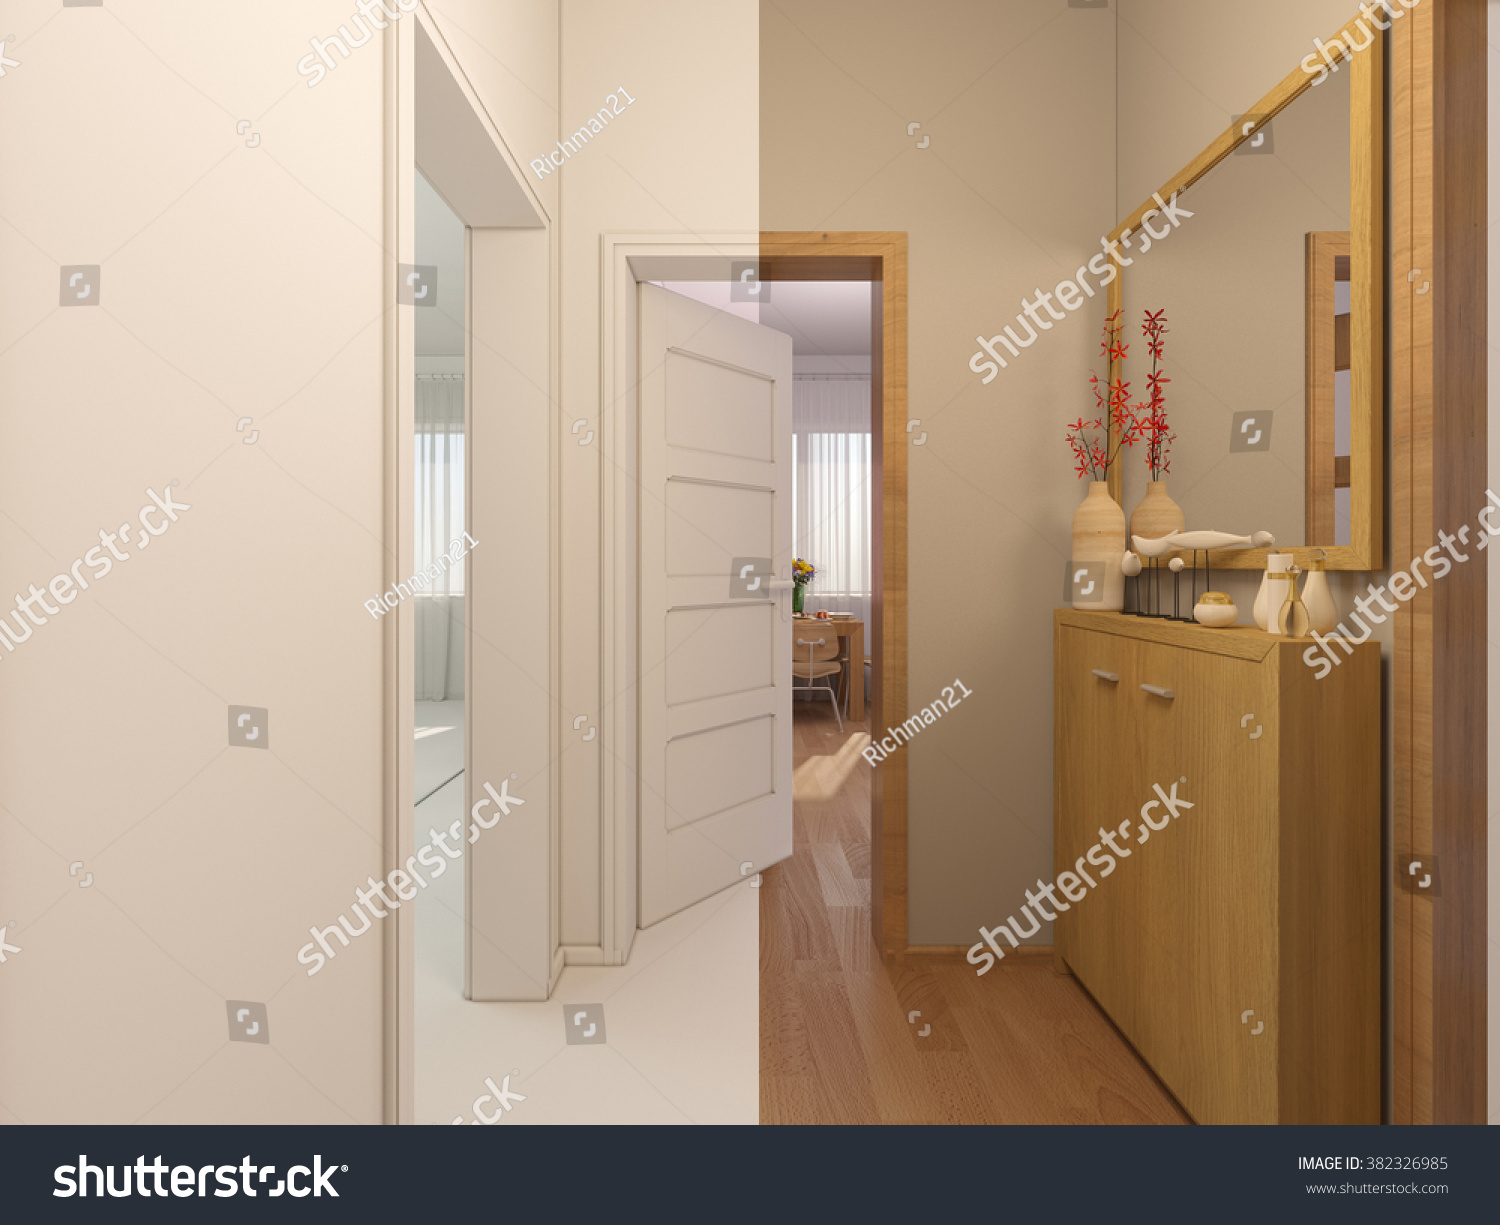 3D Render Collage Of Interior Design Entrance Hall In A Studio Apartment Modern Minimalist